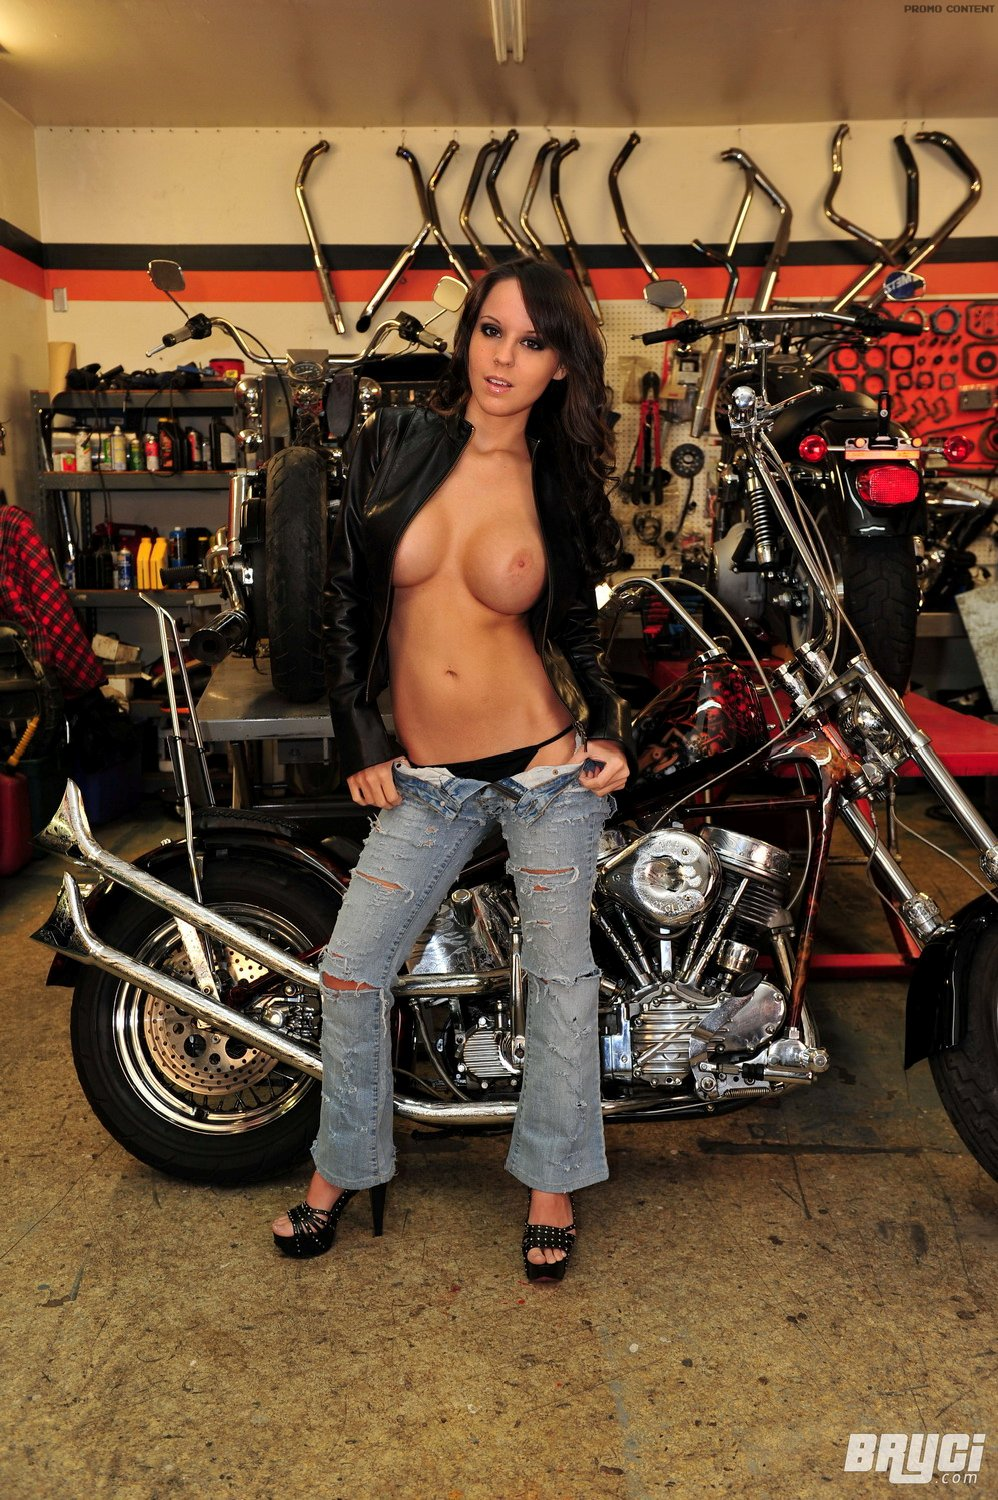 Asian biker chick nude